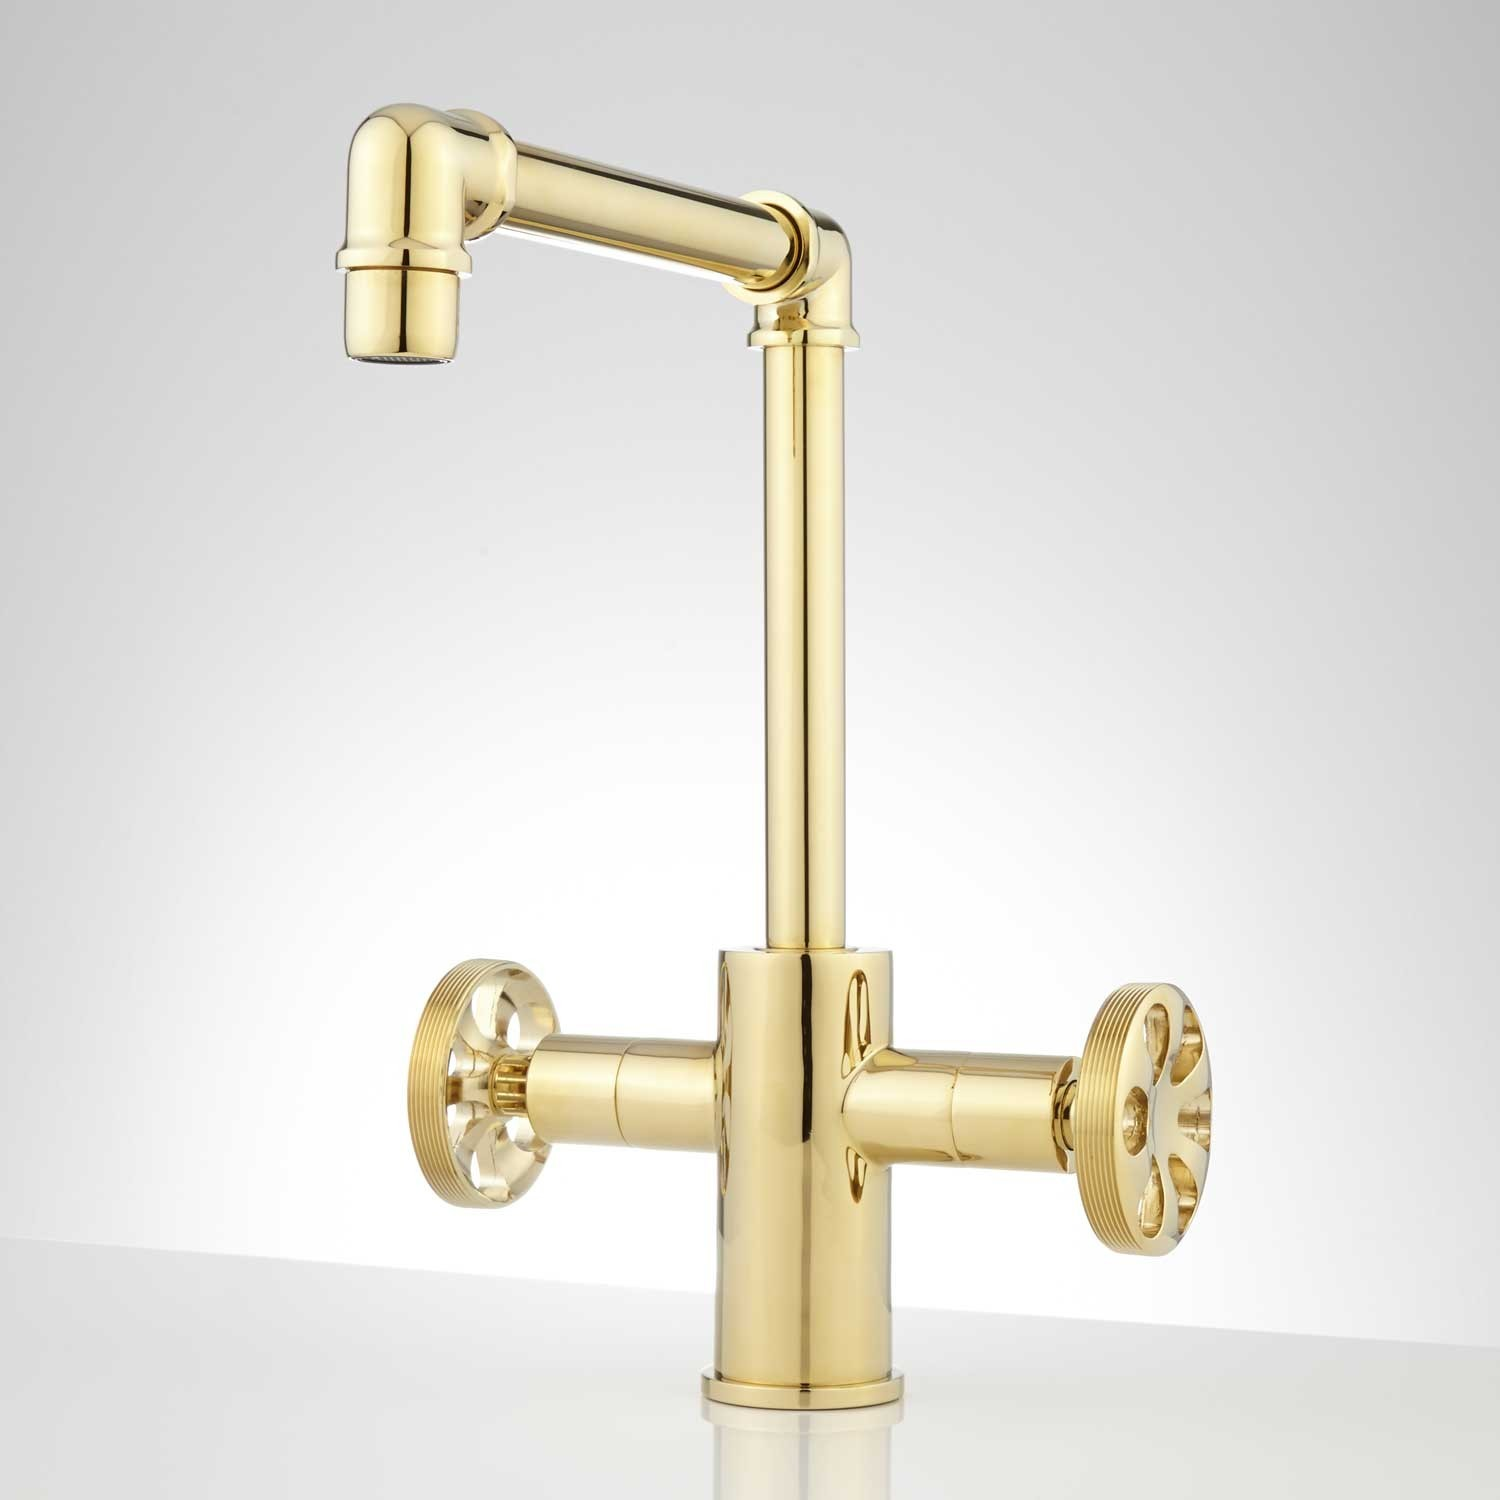 Brass Bathroom Faucets Best Edison Single Hole Dual Handle Brass Bathroom Faucet with Pop Up Decoration